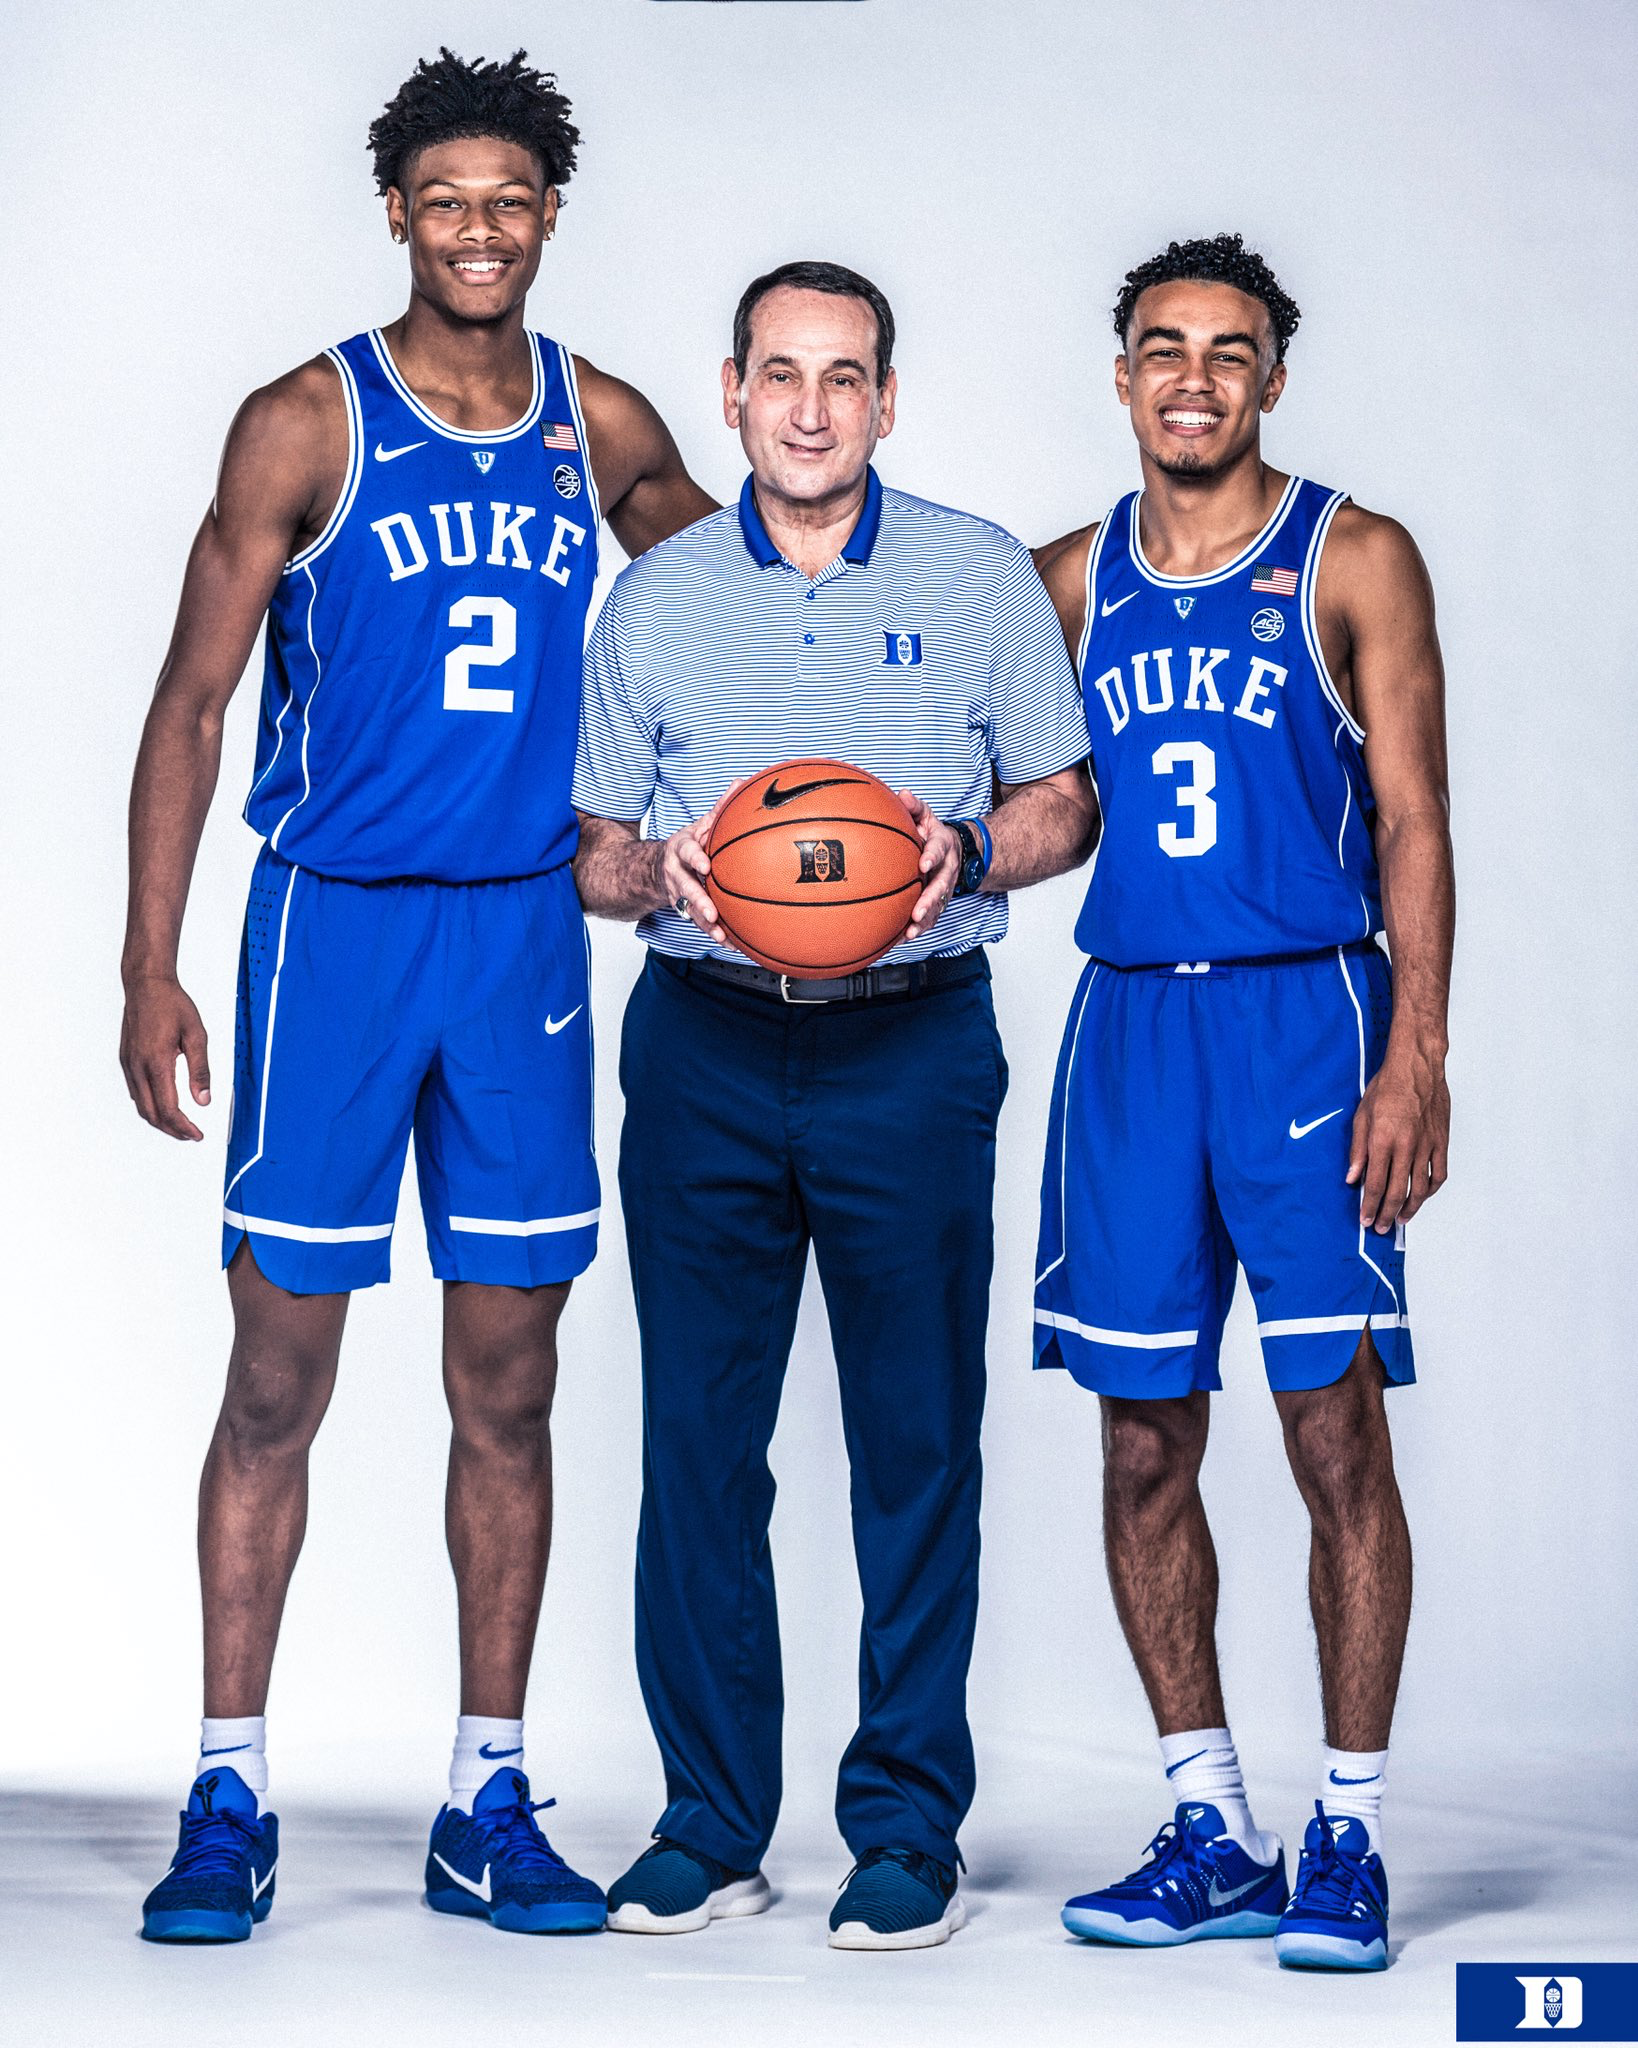 Pin by Jeff Sawyer on Duke blue devils Duke bball, Fsu